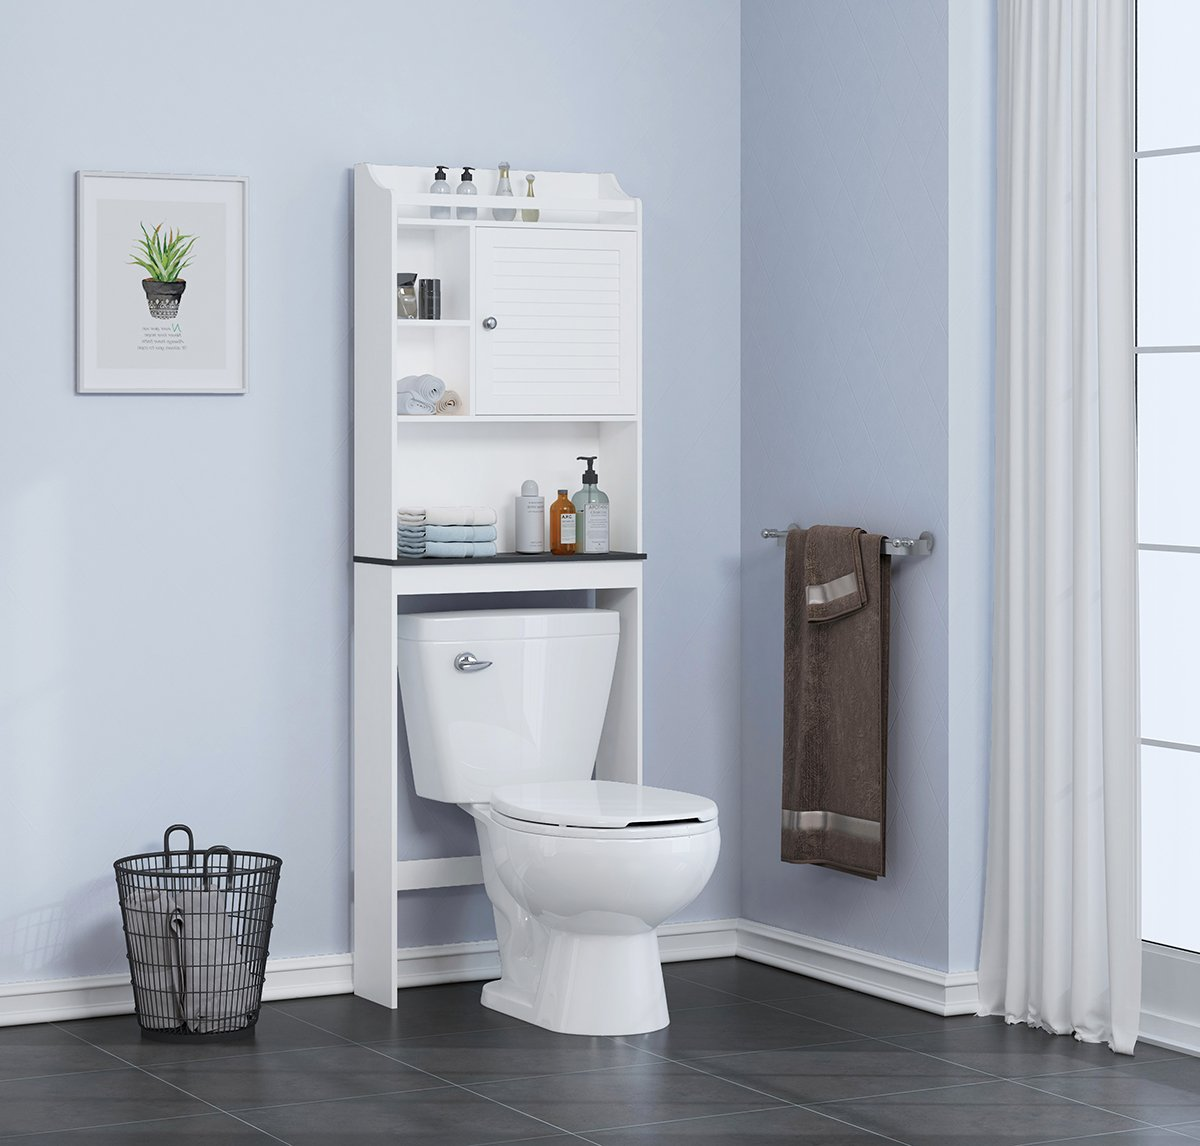 Spirich Home Bathroom Shelf over the toilet, Bathroom Cabinet Organizer over toilet with Louver Door, White Finish by Spirich Home (Image #7)